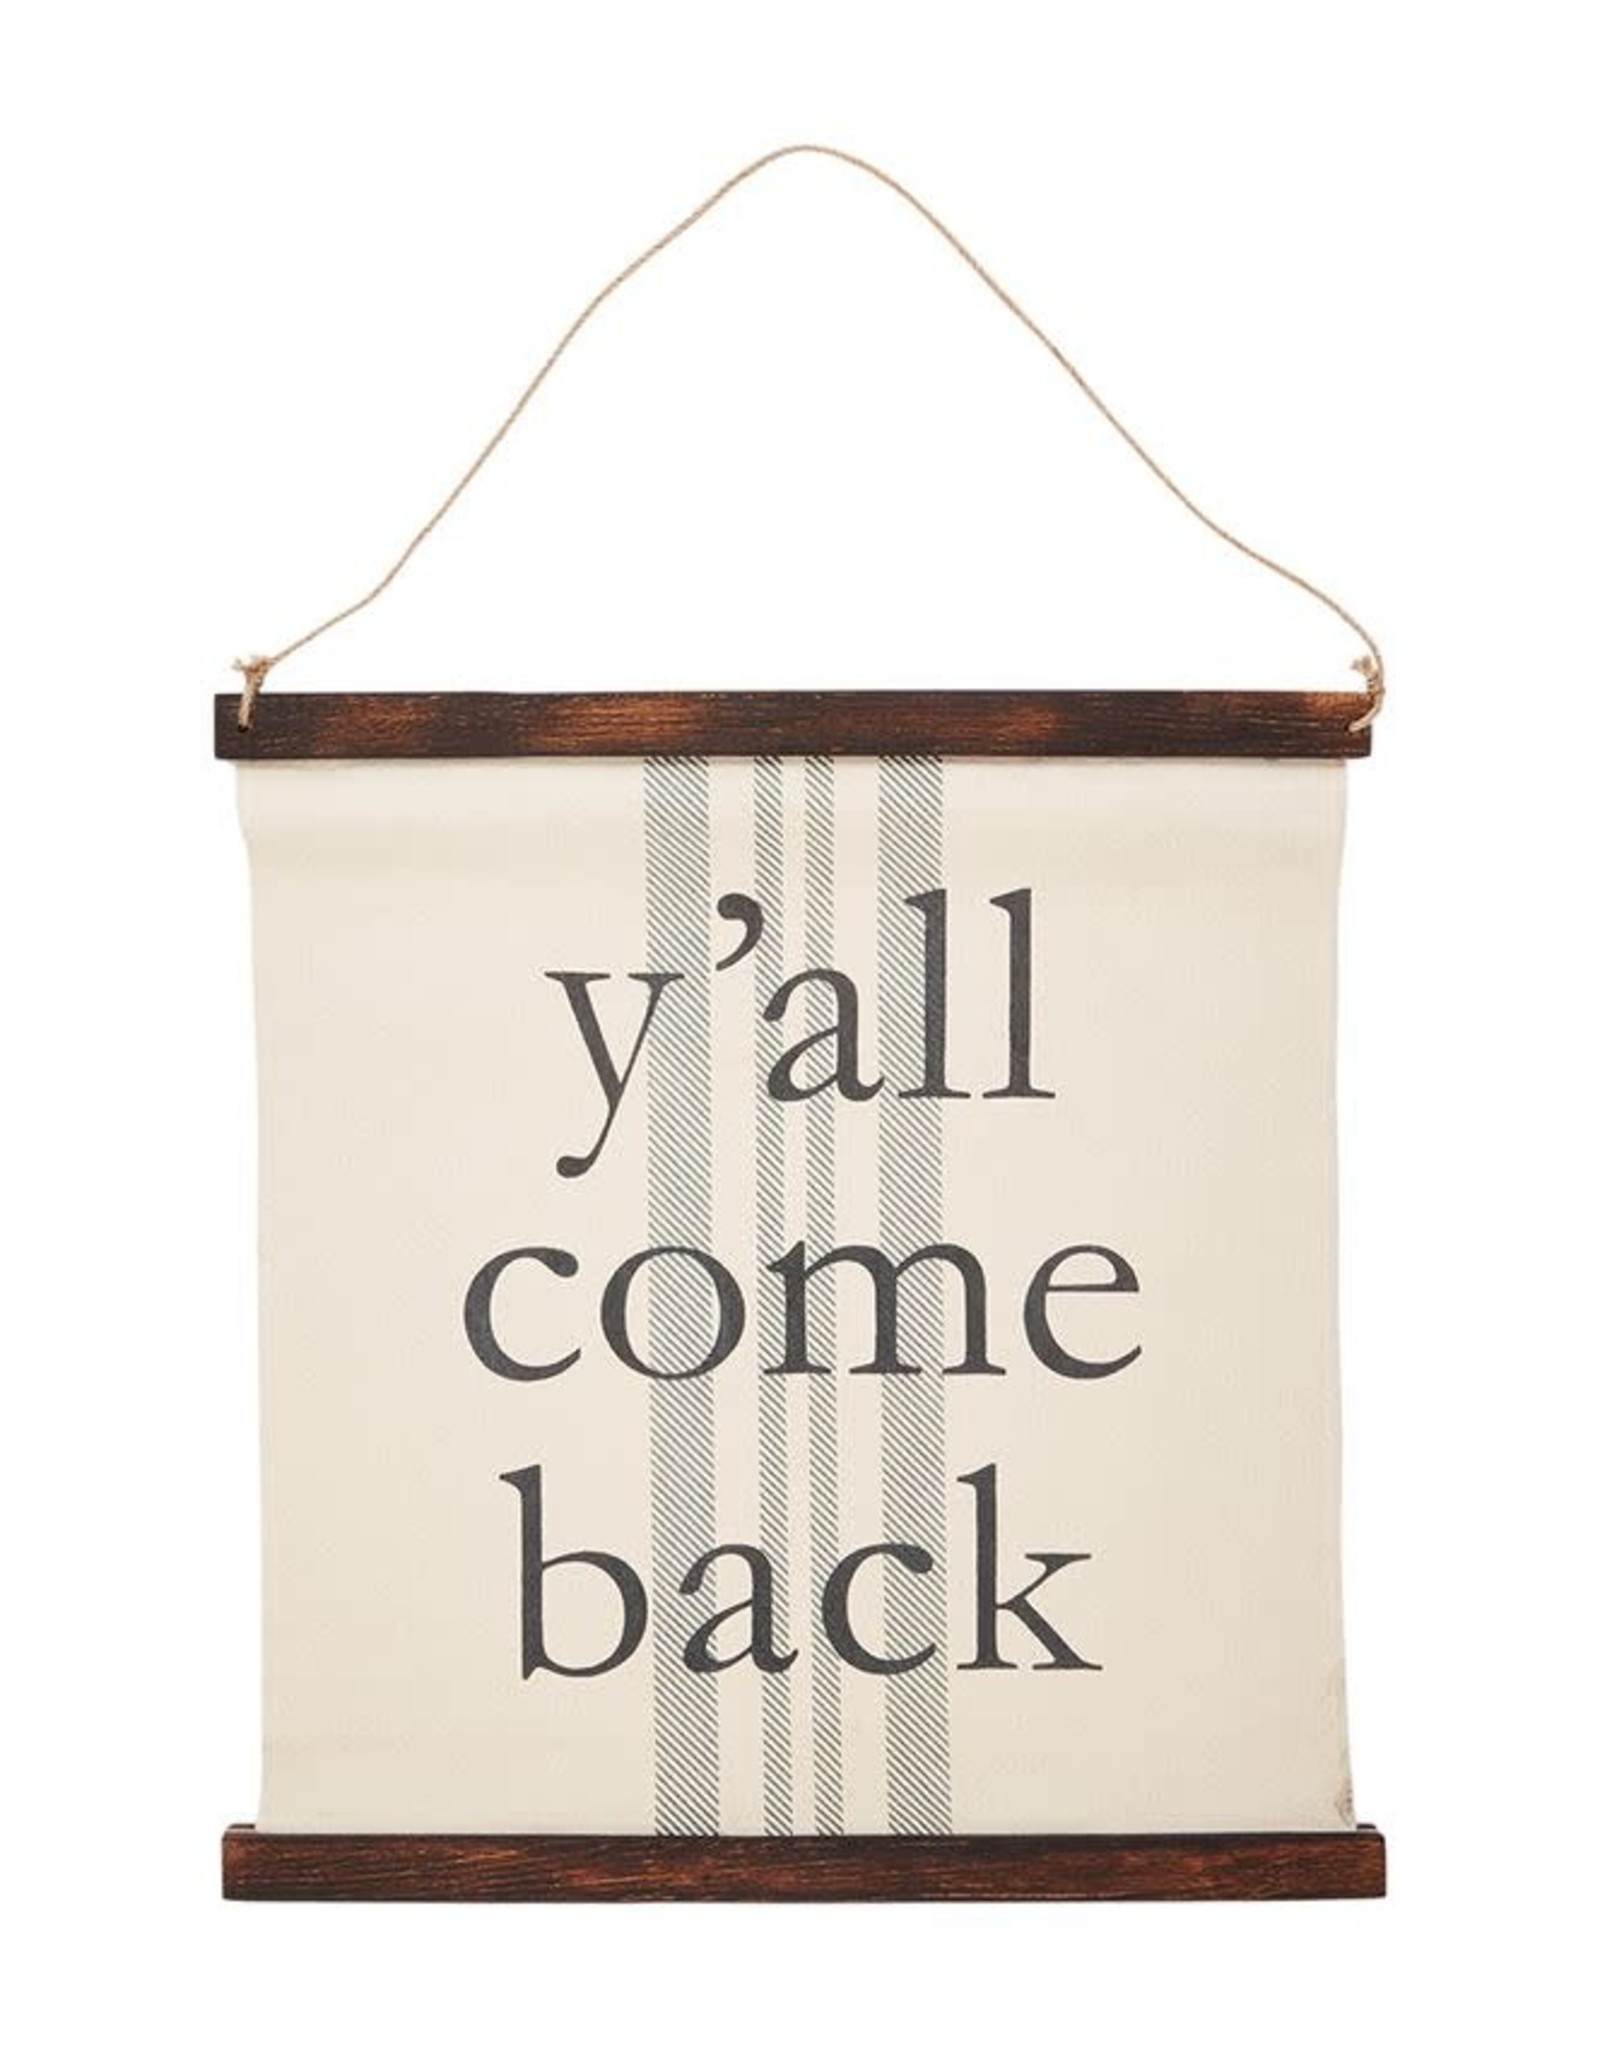 Wink Y'all Come Back Wall Hanging